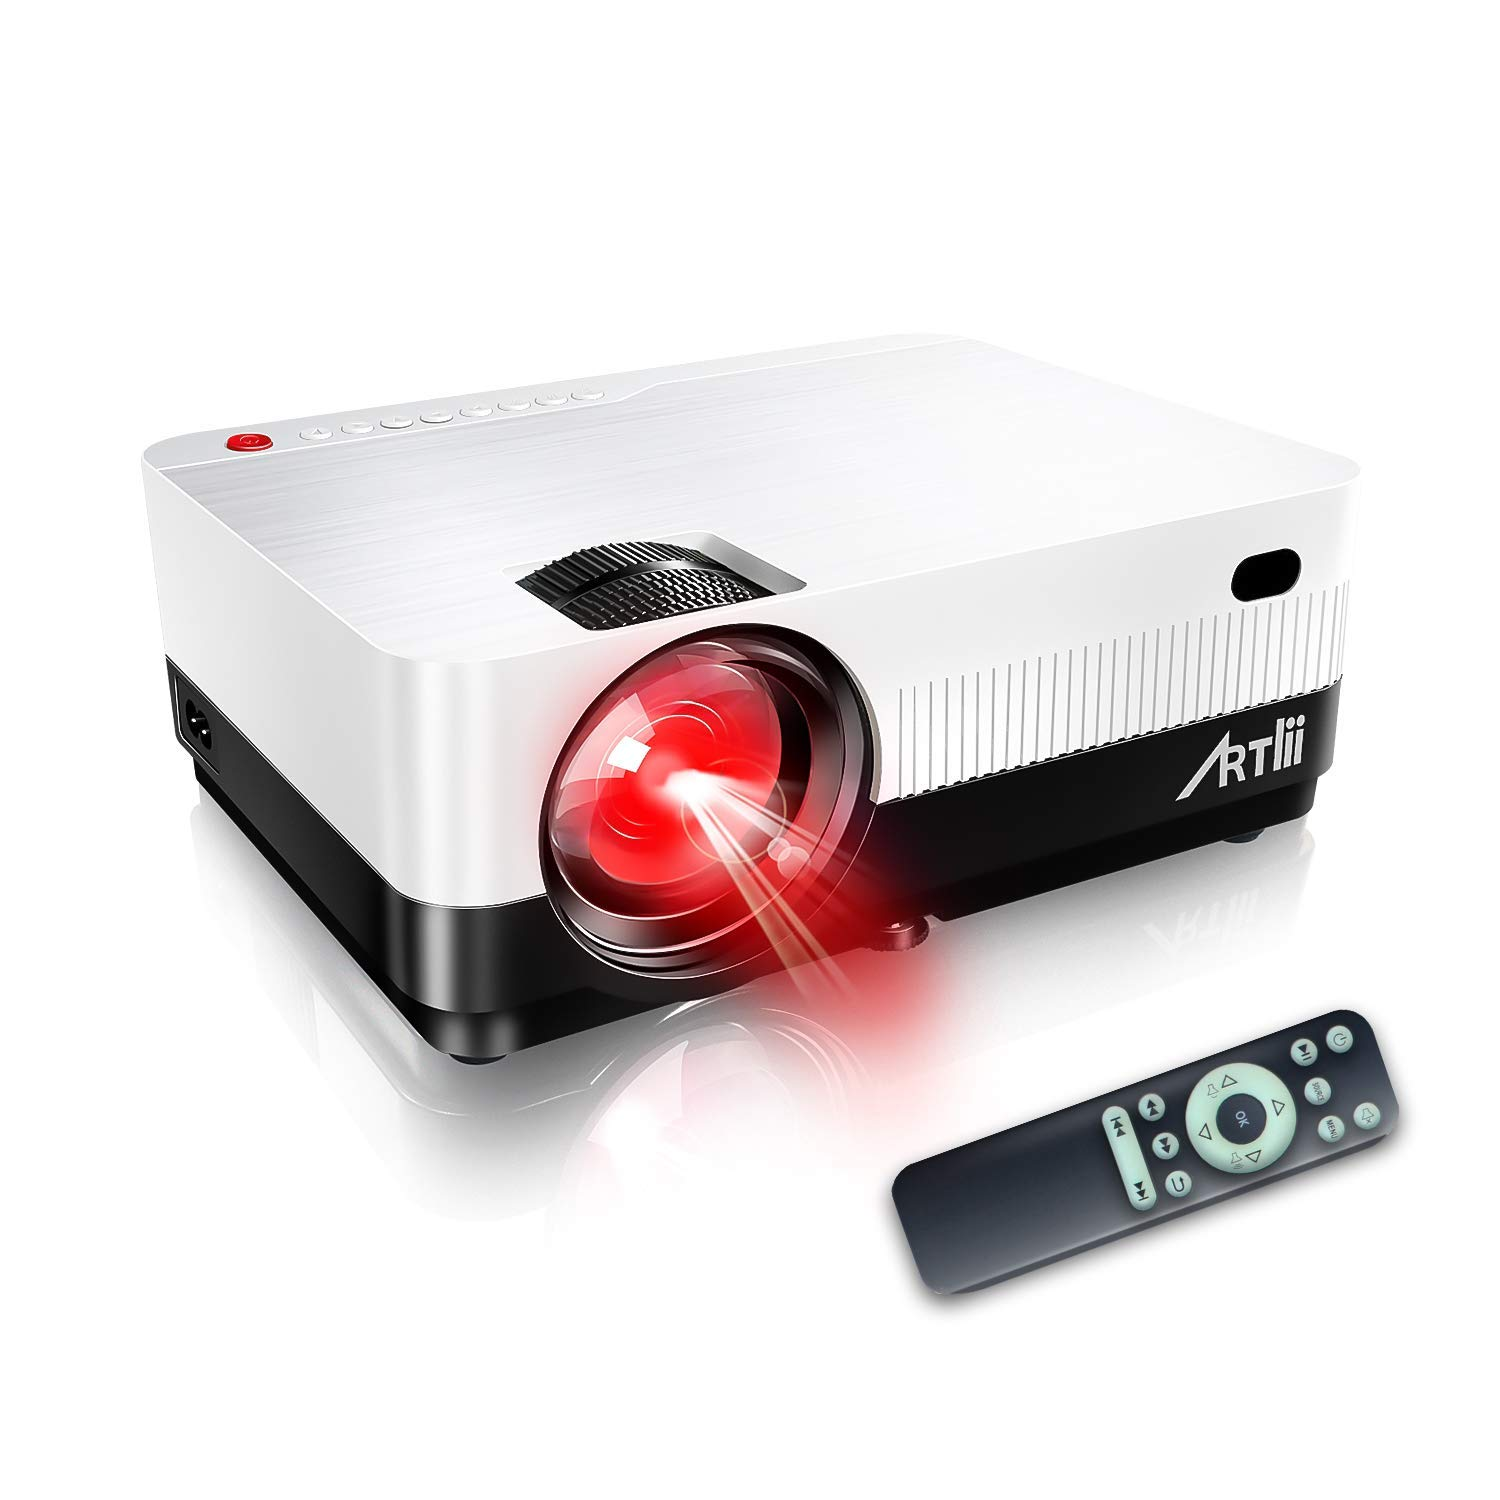 Artlii H3 : test du videoprojecteur Full HD